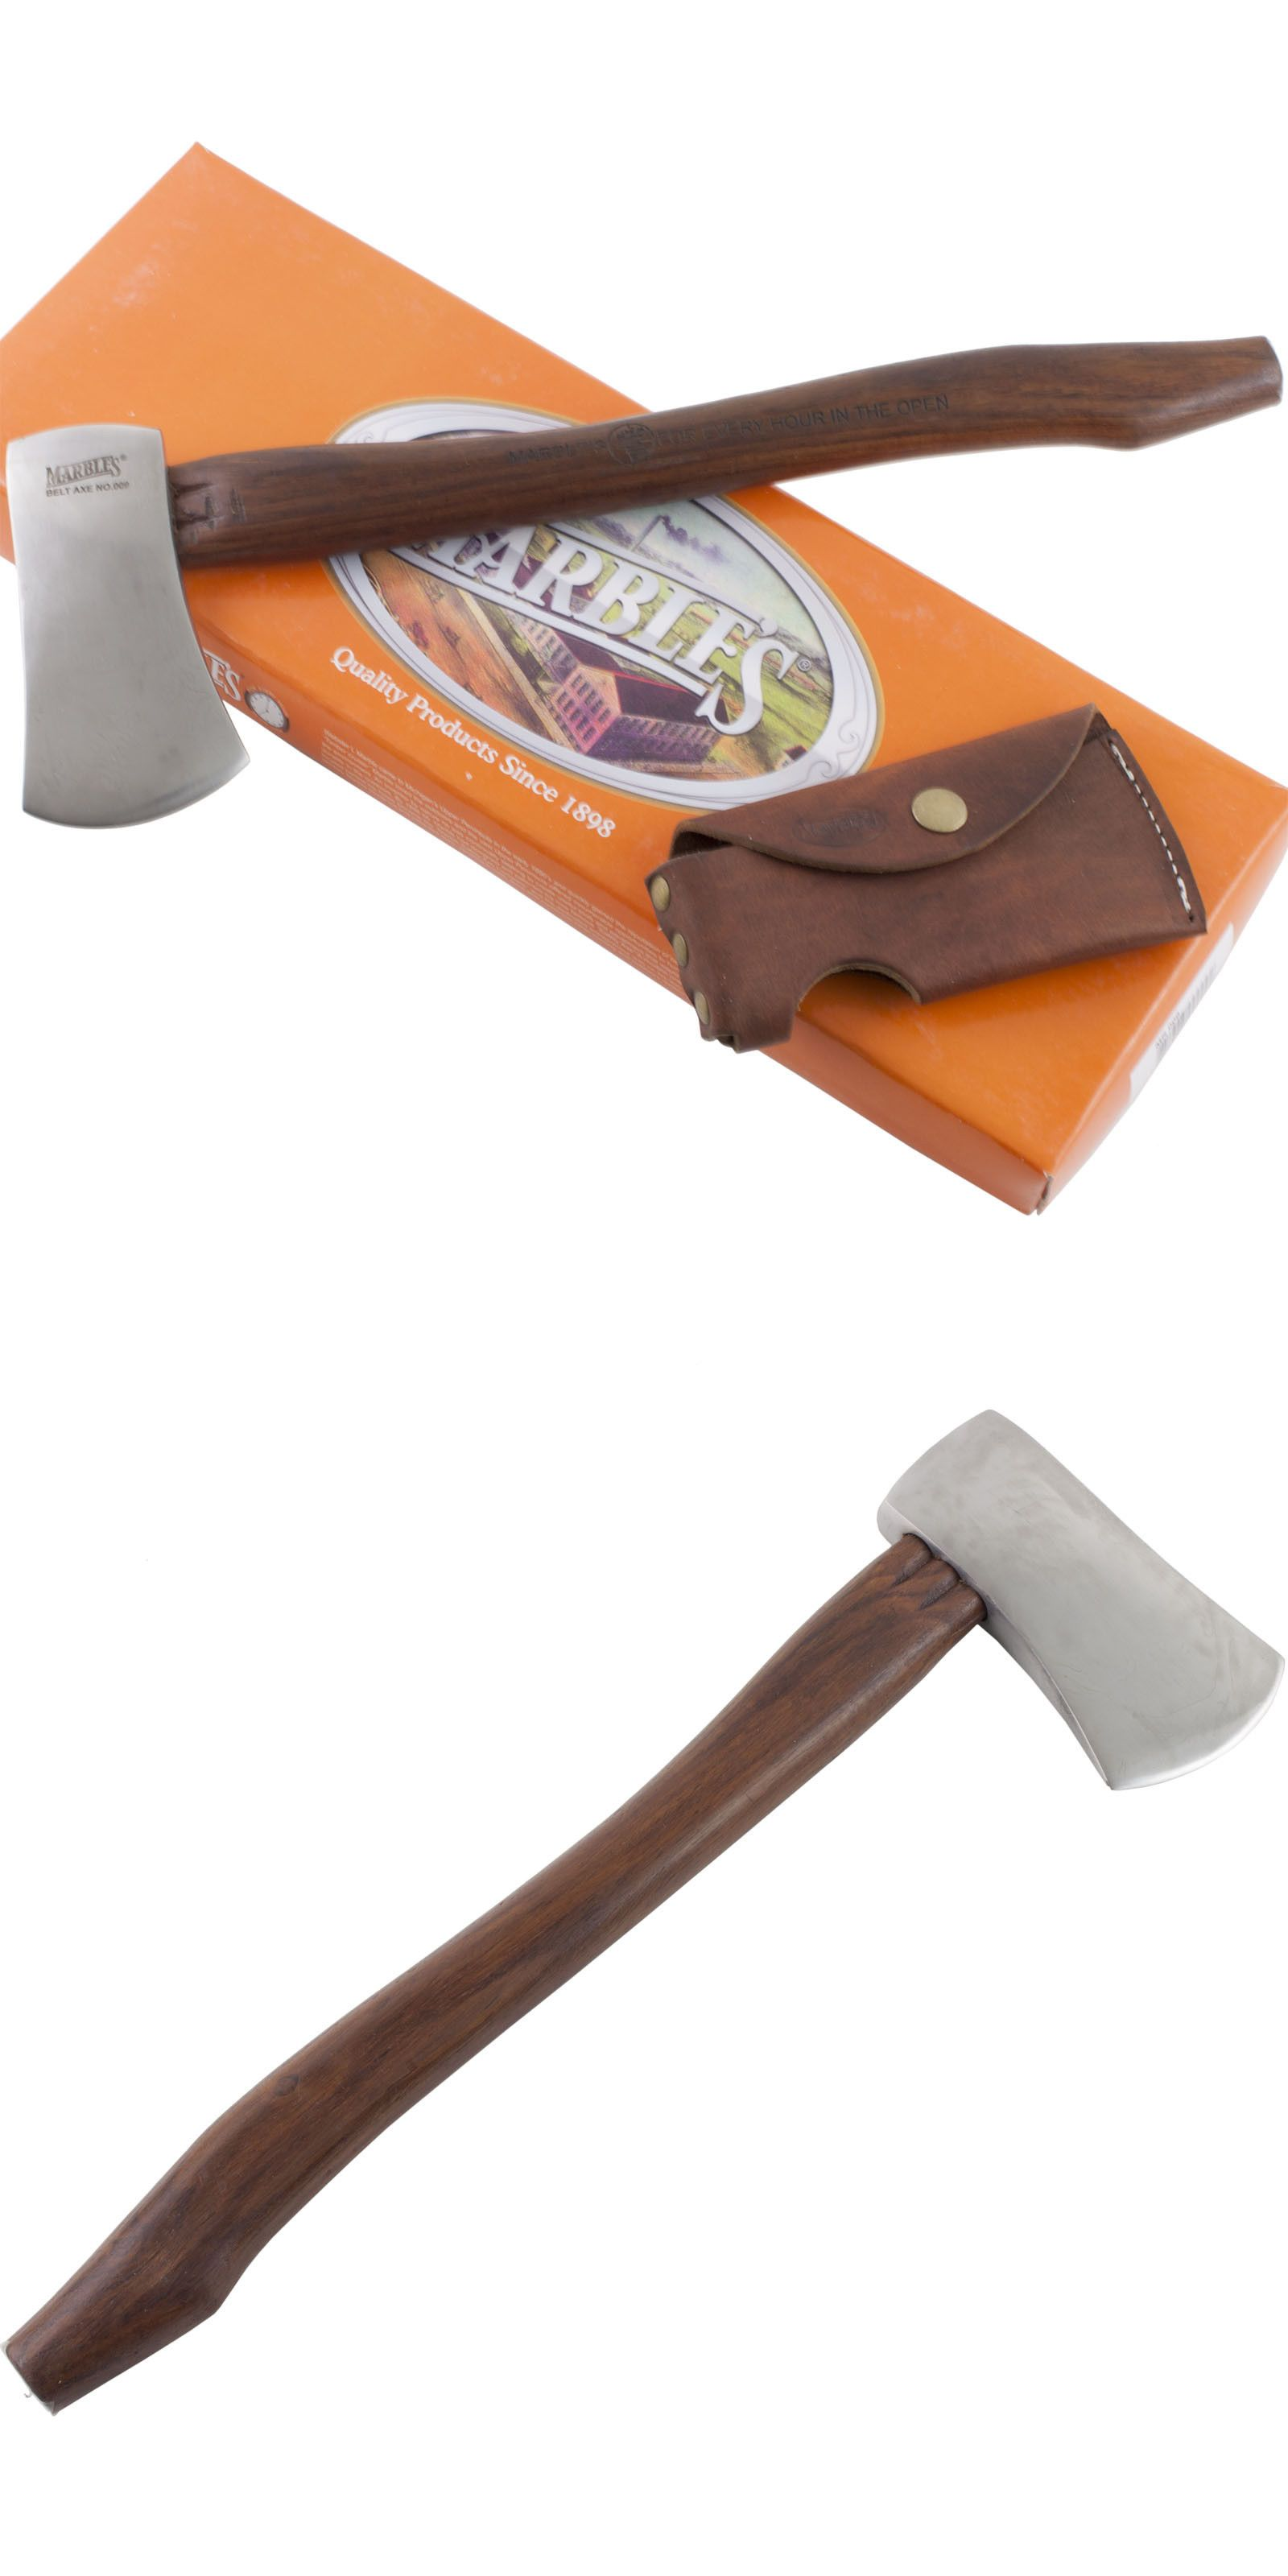 Camping Hatchets And Axes 75234 Marbles 9 Belt 14 5 8 Axe Hatchet Hardwood Handle Mr9 Camping Hunting Sheath Camping Hatchet Hatchet Camping Uk